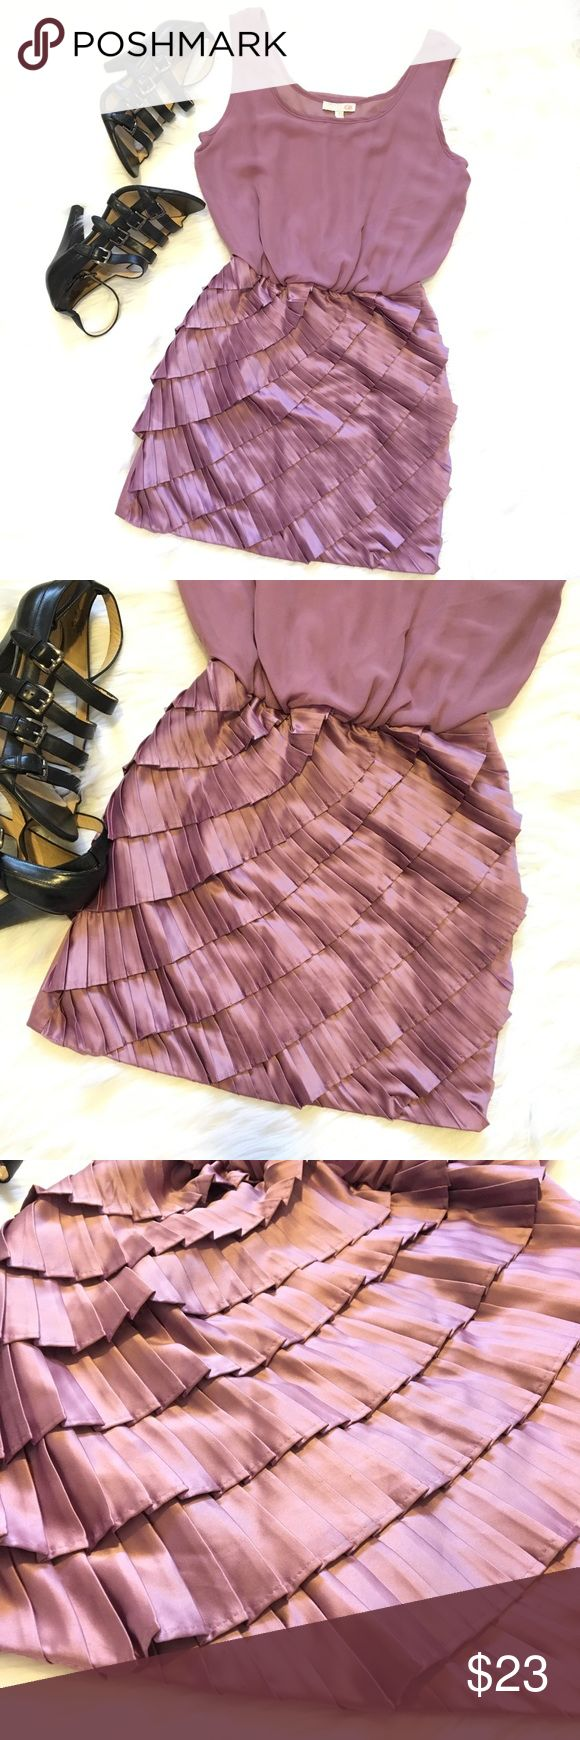 Gianni Bini sleeveless mini blouson ruffle dress Gianni Bini purple lavender pleated ruffle sleeveless mini blouson dress. Size small. Skirt is pleated accordion style in a ruffle layered silhouette with metallic sheen as it moves. The top is a blouson style sleeveless scoop neck solid. Color is slightly darker than lavender but still a soft purple. Great condition. No flaws. Smoke free home. 96% poly 4% spandex. Great for date night, girls night, holiday parties. Add a statement necklace…